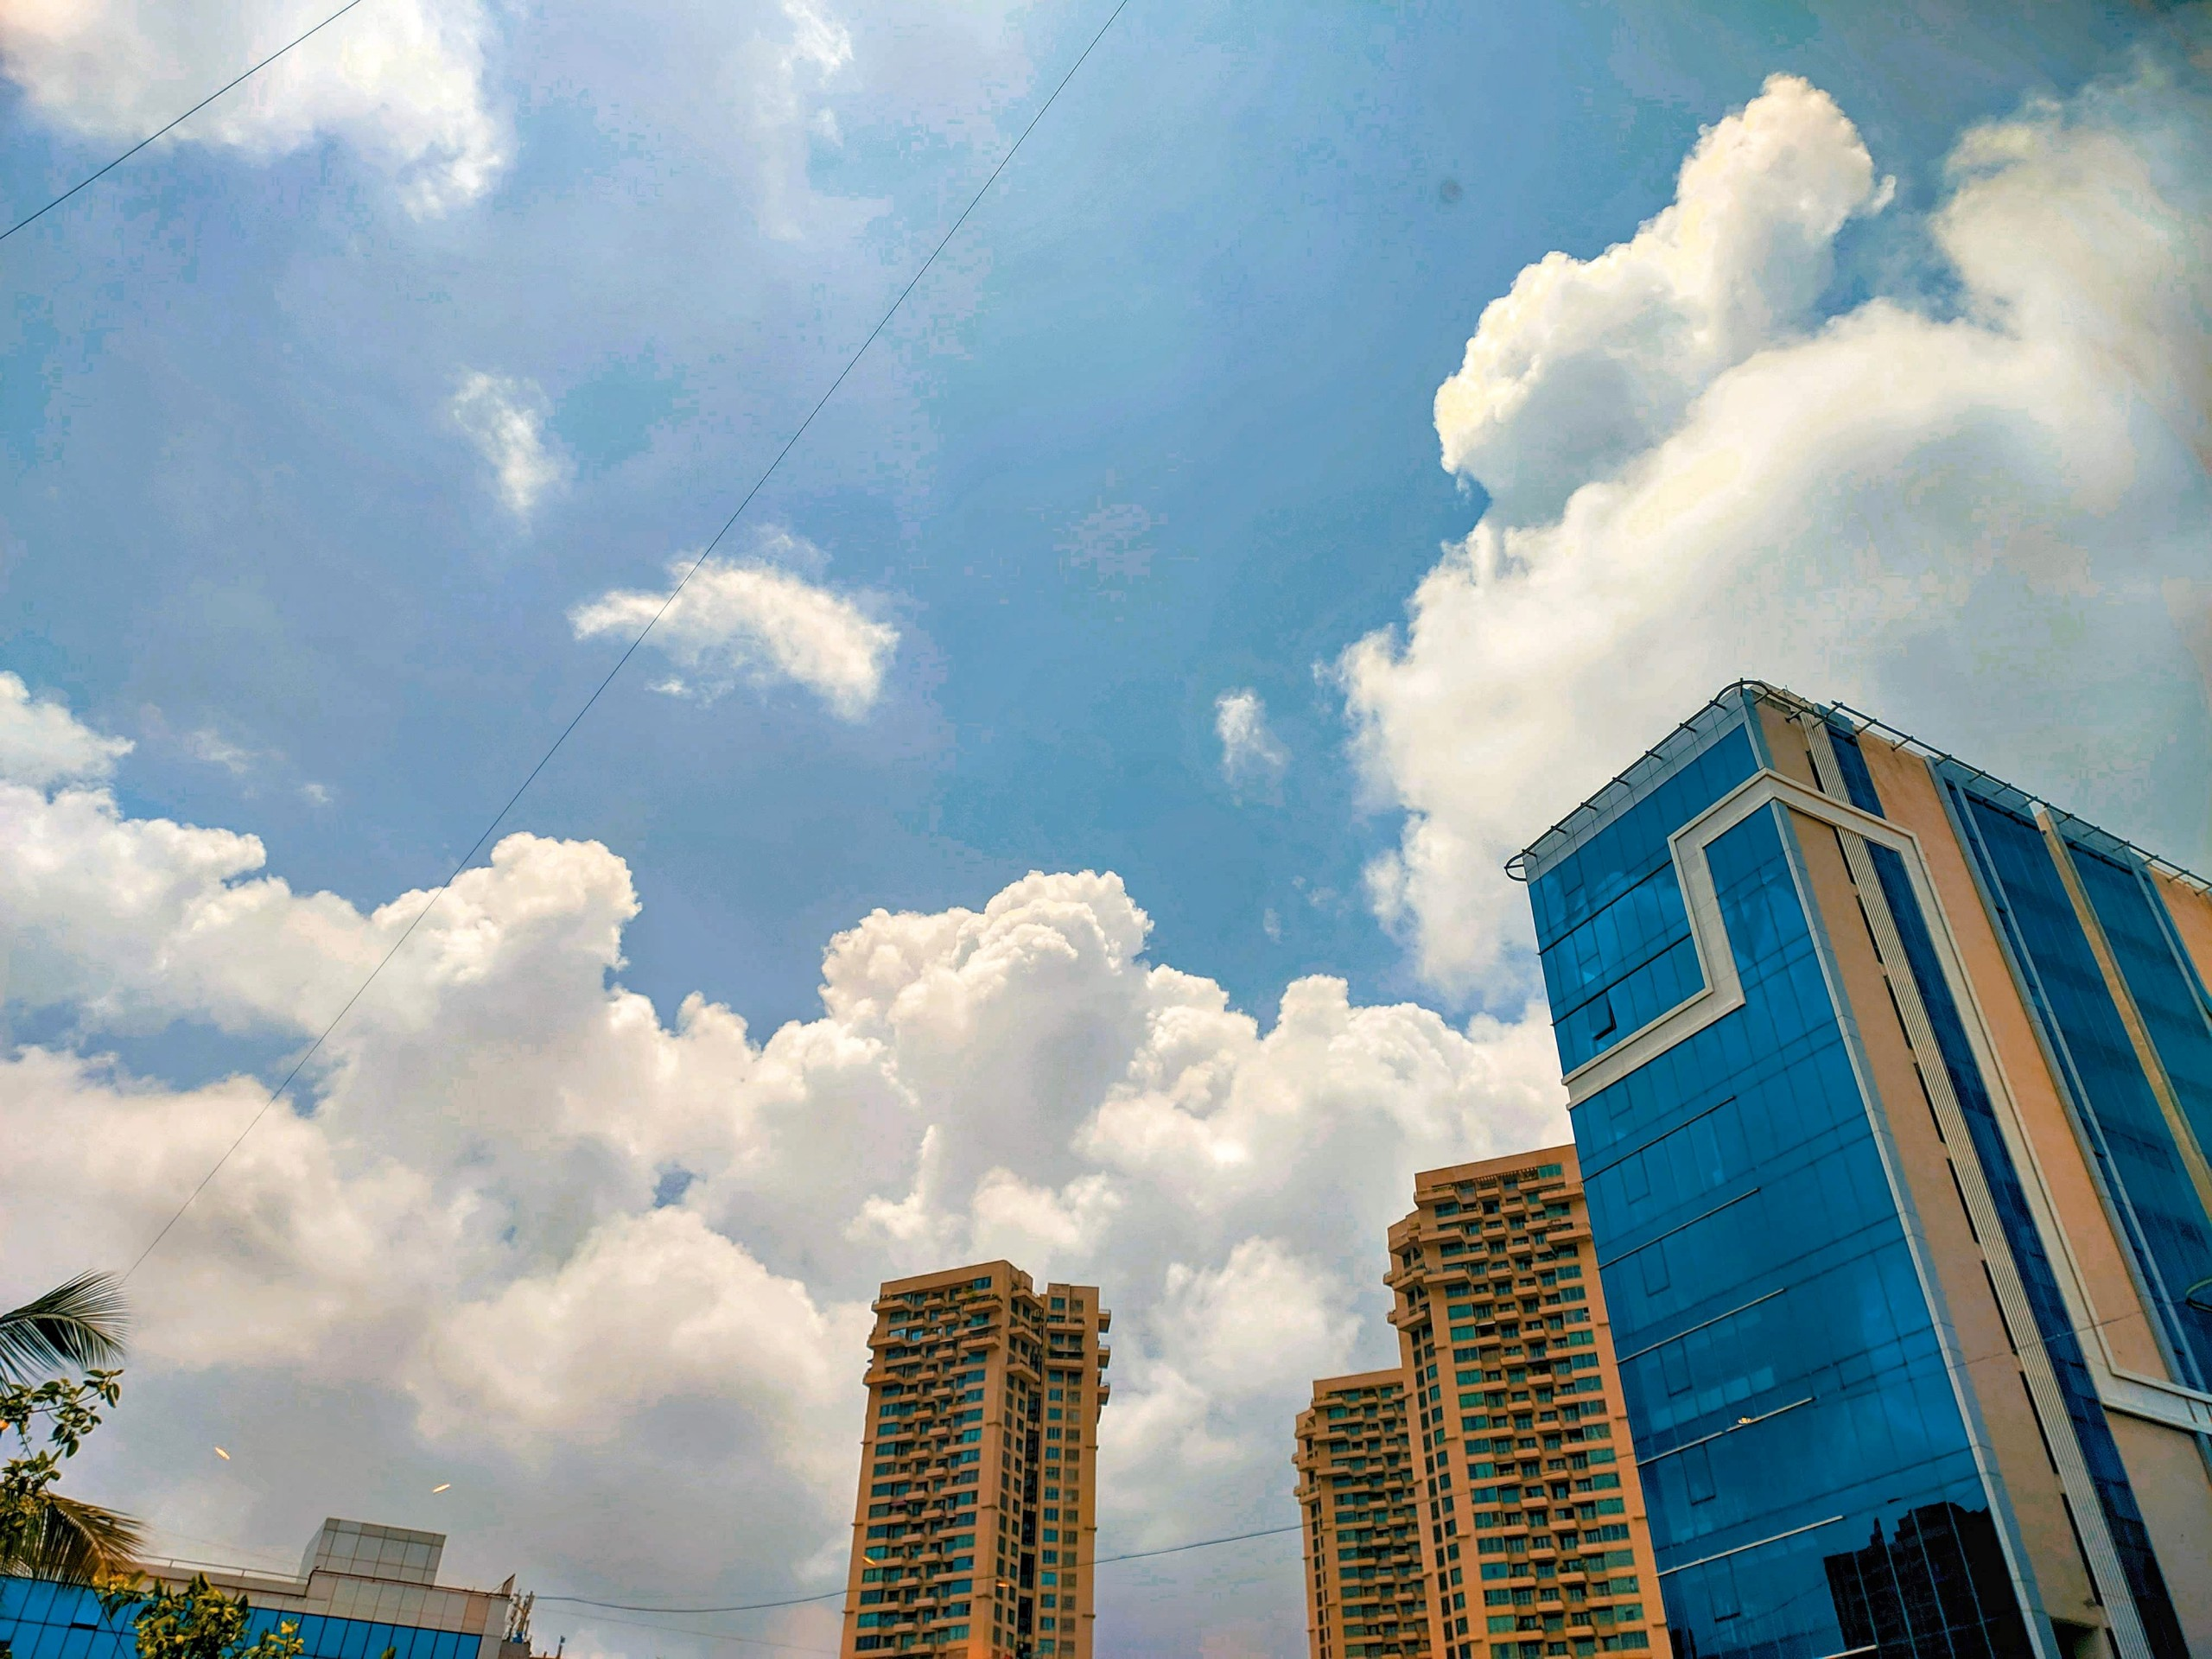 Tall buildings and open sky